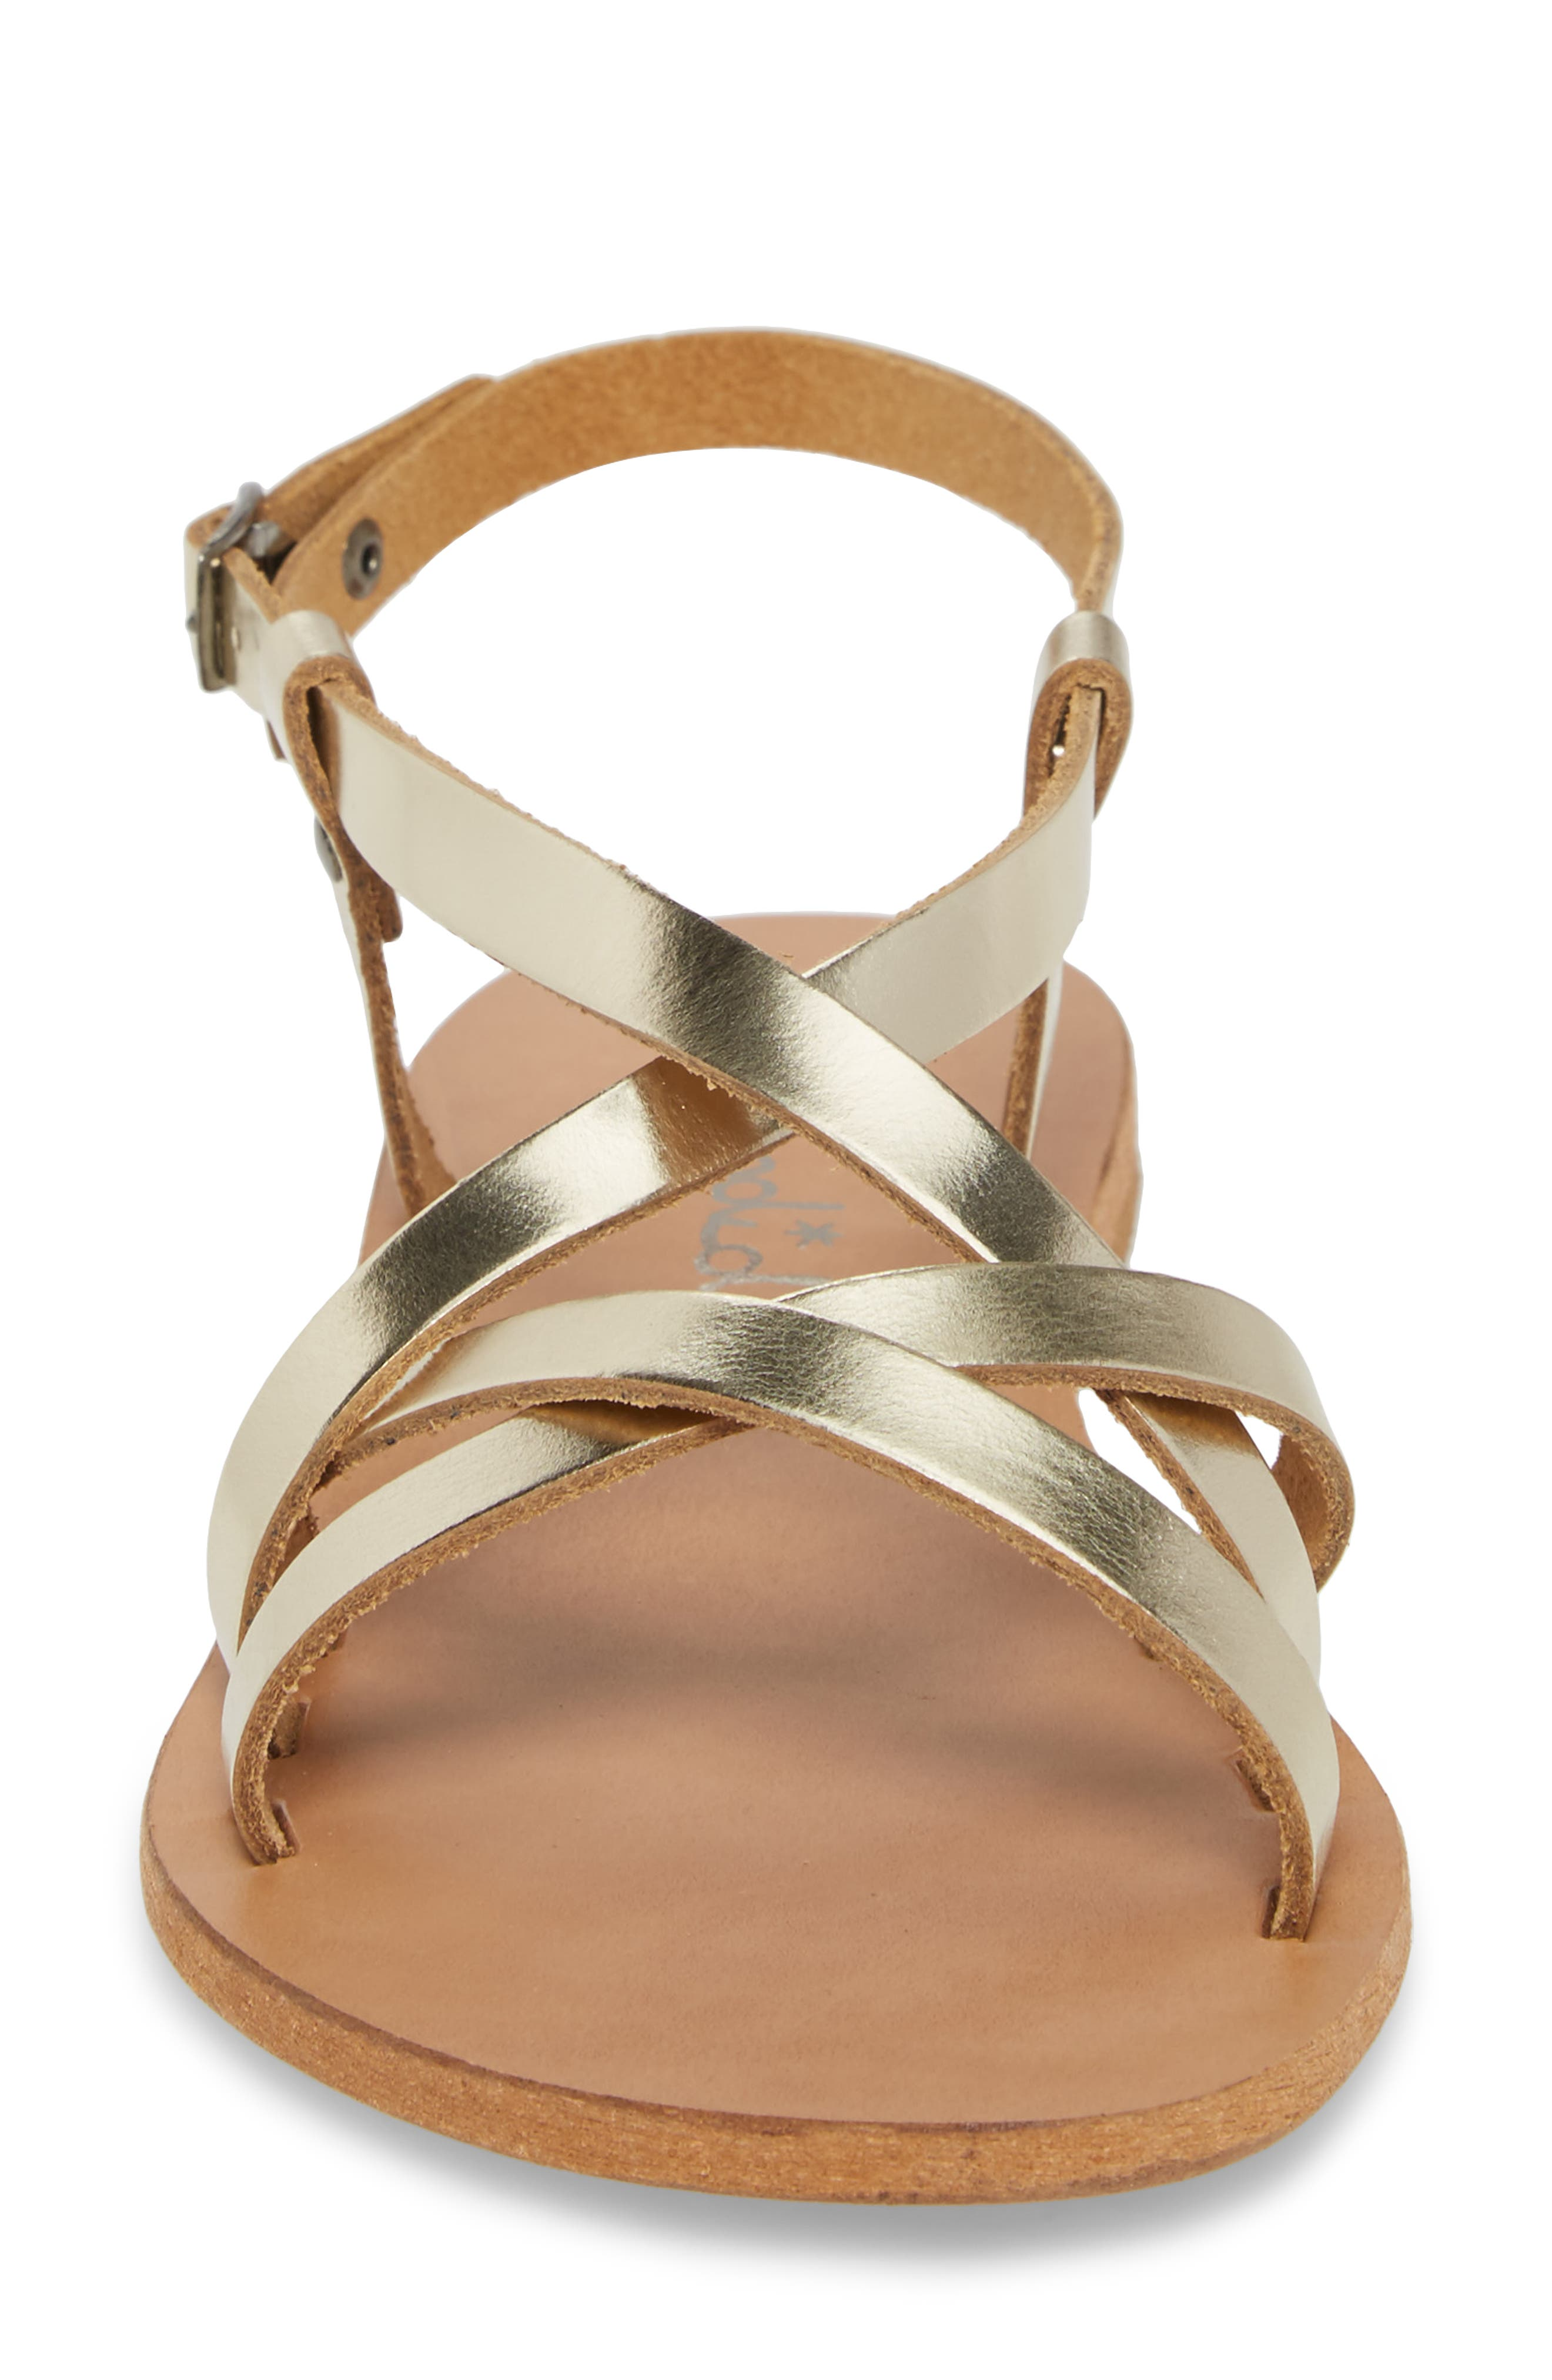 Bowen Sandal,                             Alternate thumbnail 4, color,                             Platino Leather